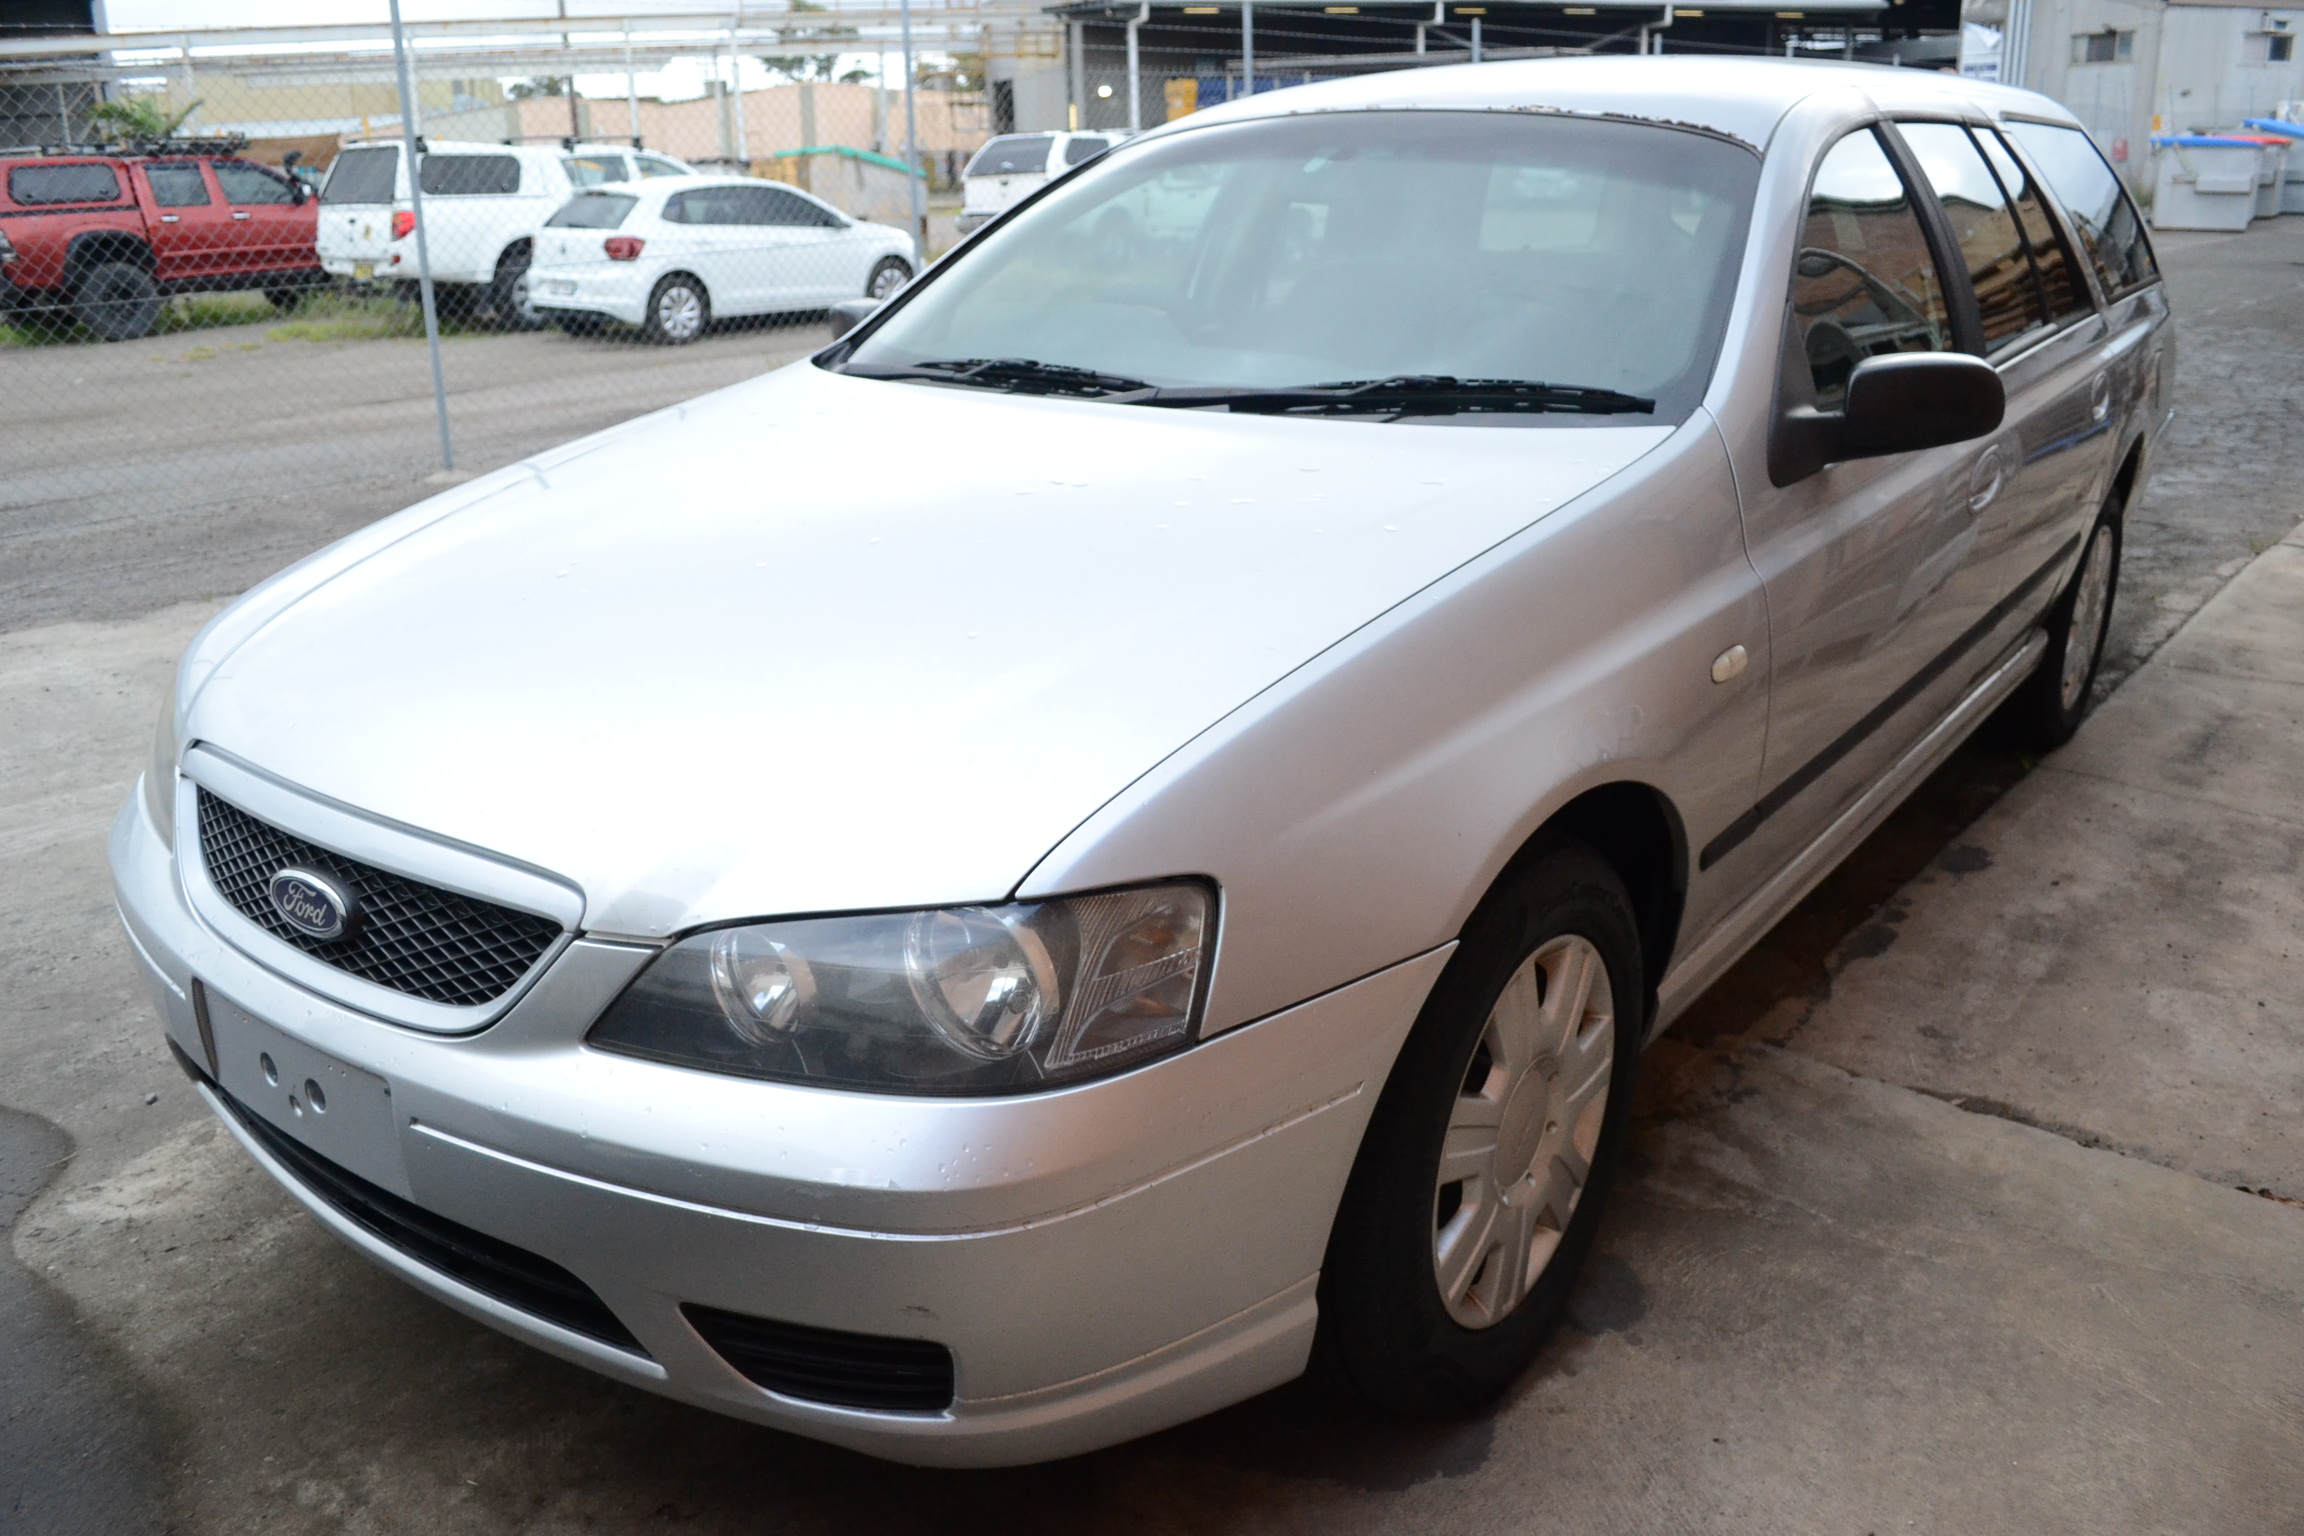 2005 Ford Falcon Futura BF Automatic Wagon